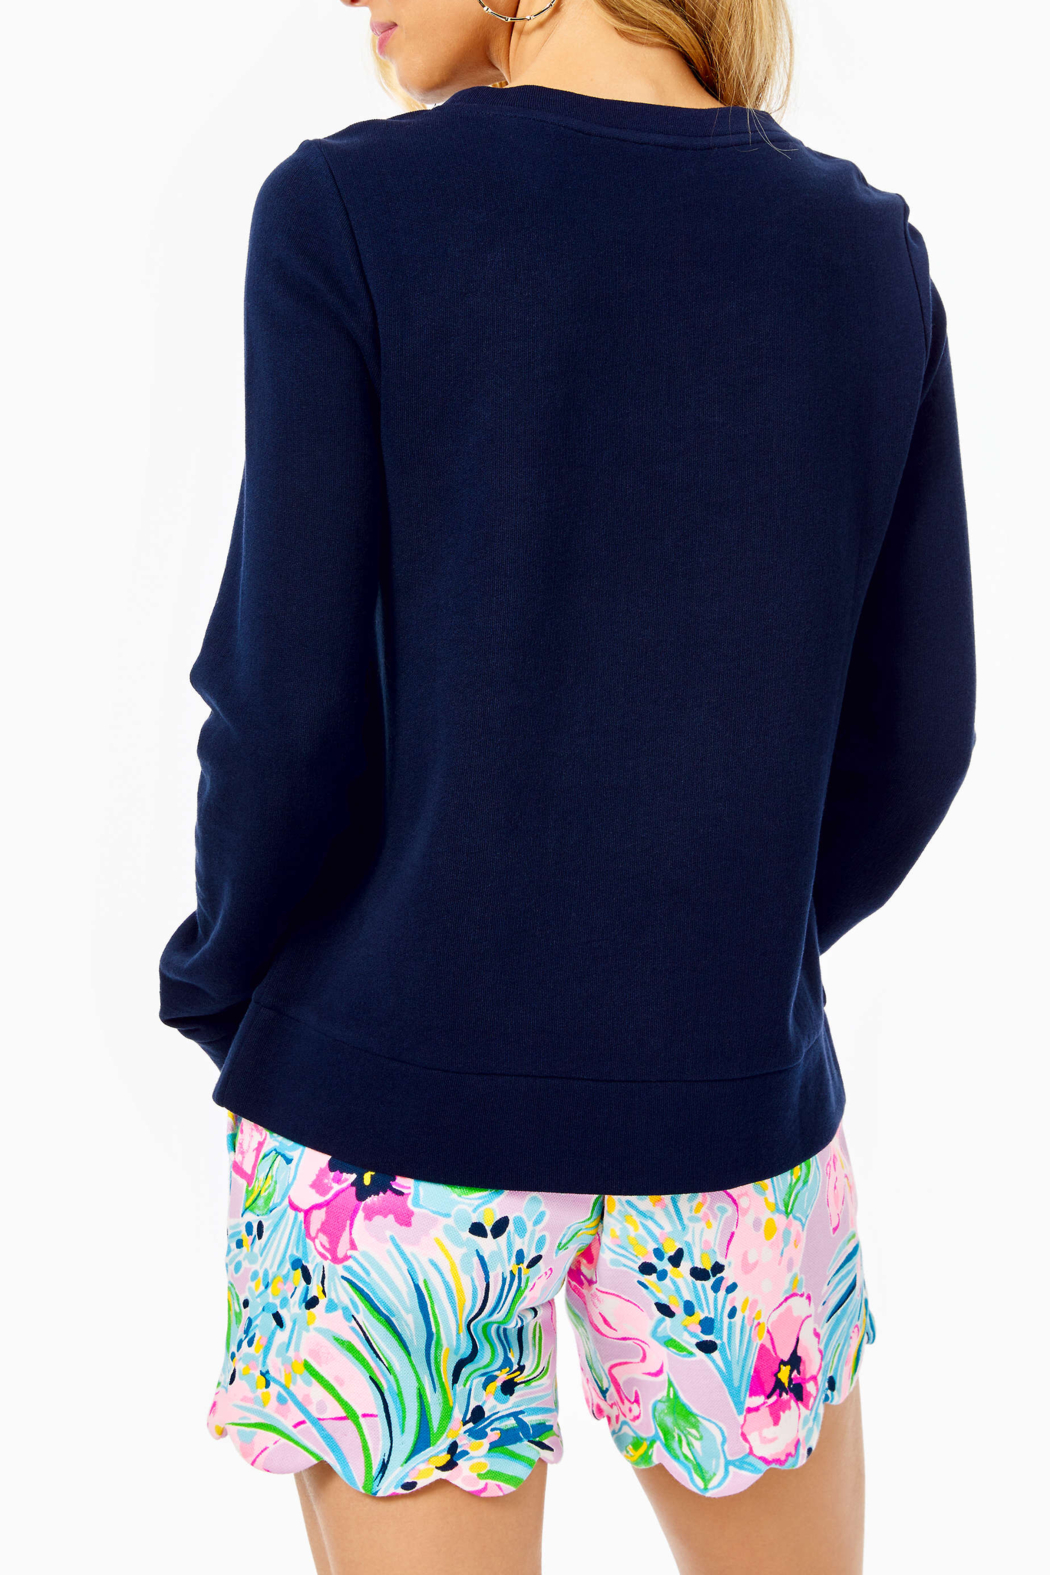 Lilly Pulitzer  Rami sweatshirt 007121 - Front Full Image